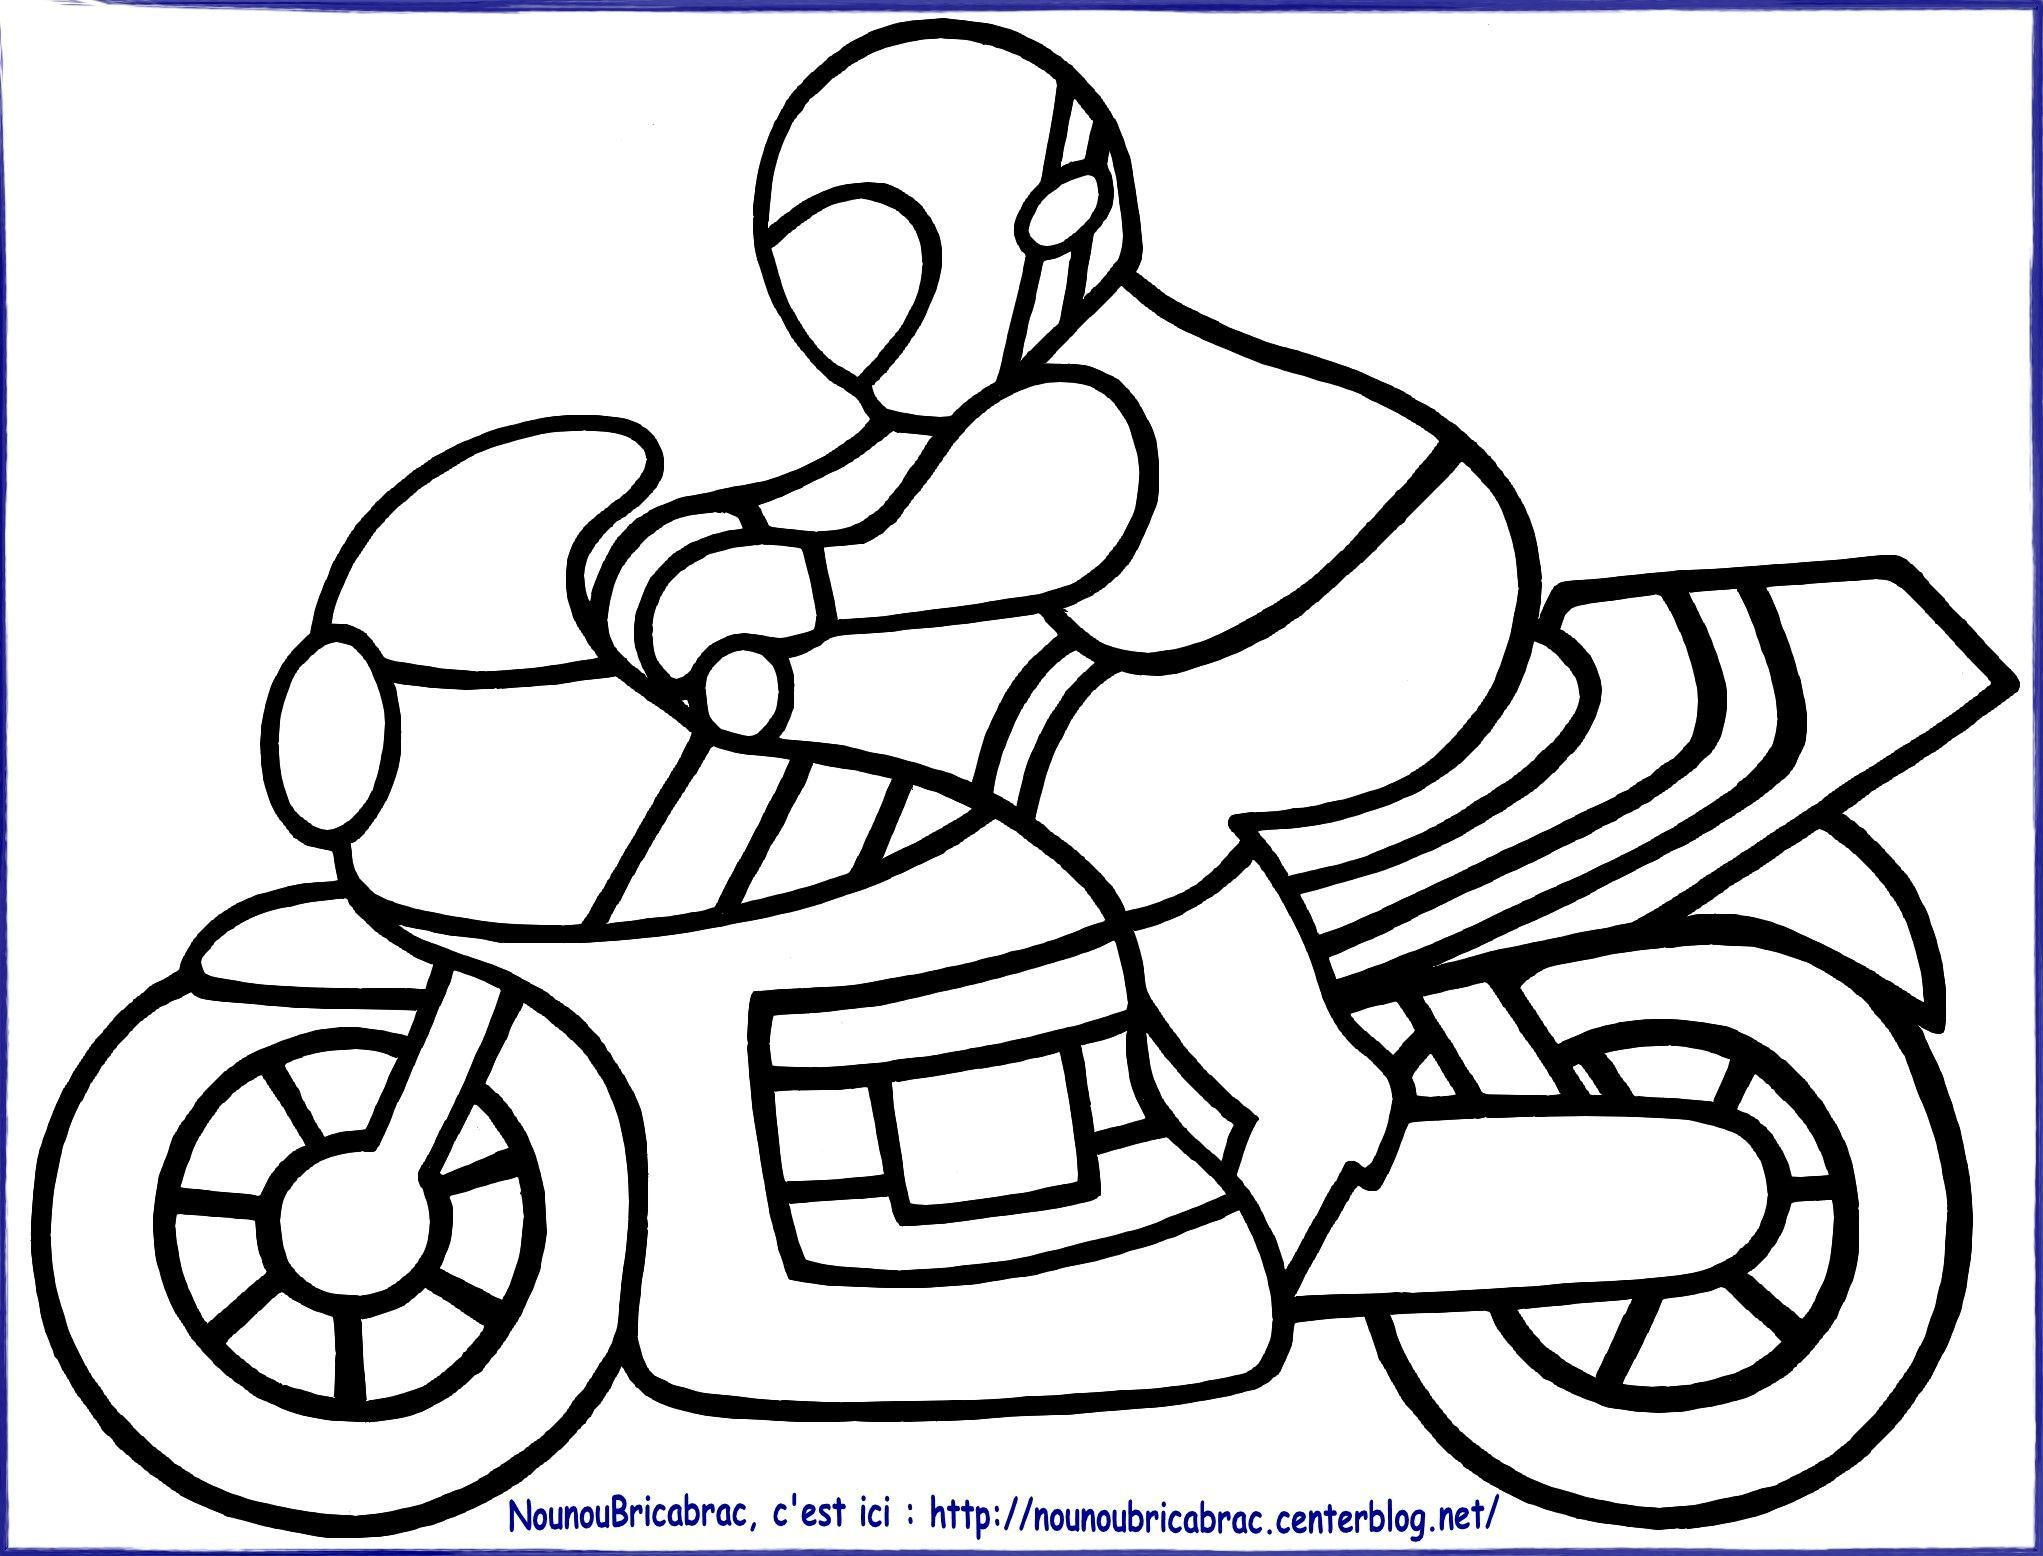 Coloriages transports - Dessin moto enfant ...